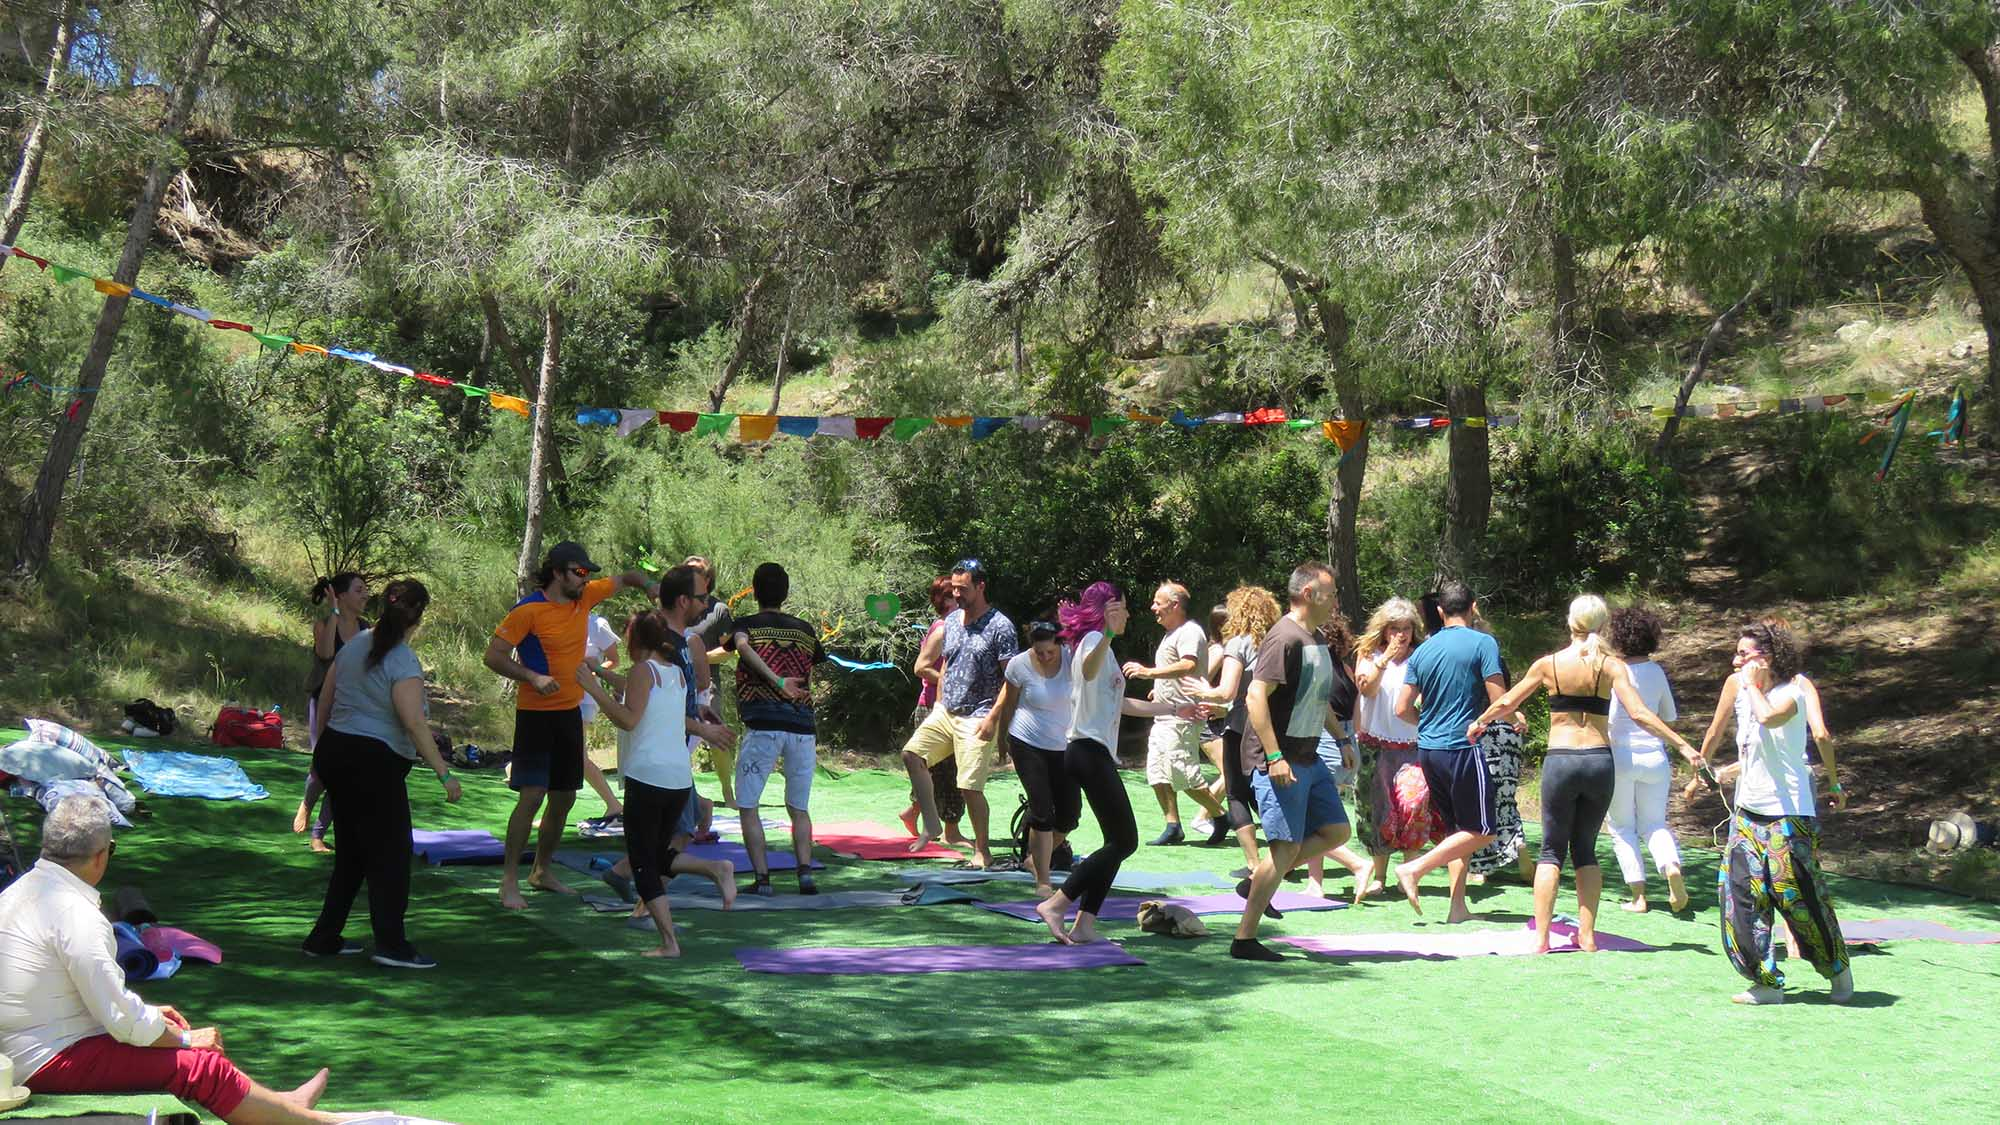 Mother Earth Festival raises more than 3,700 euros